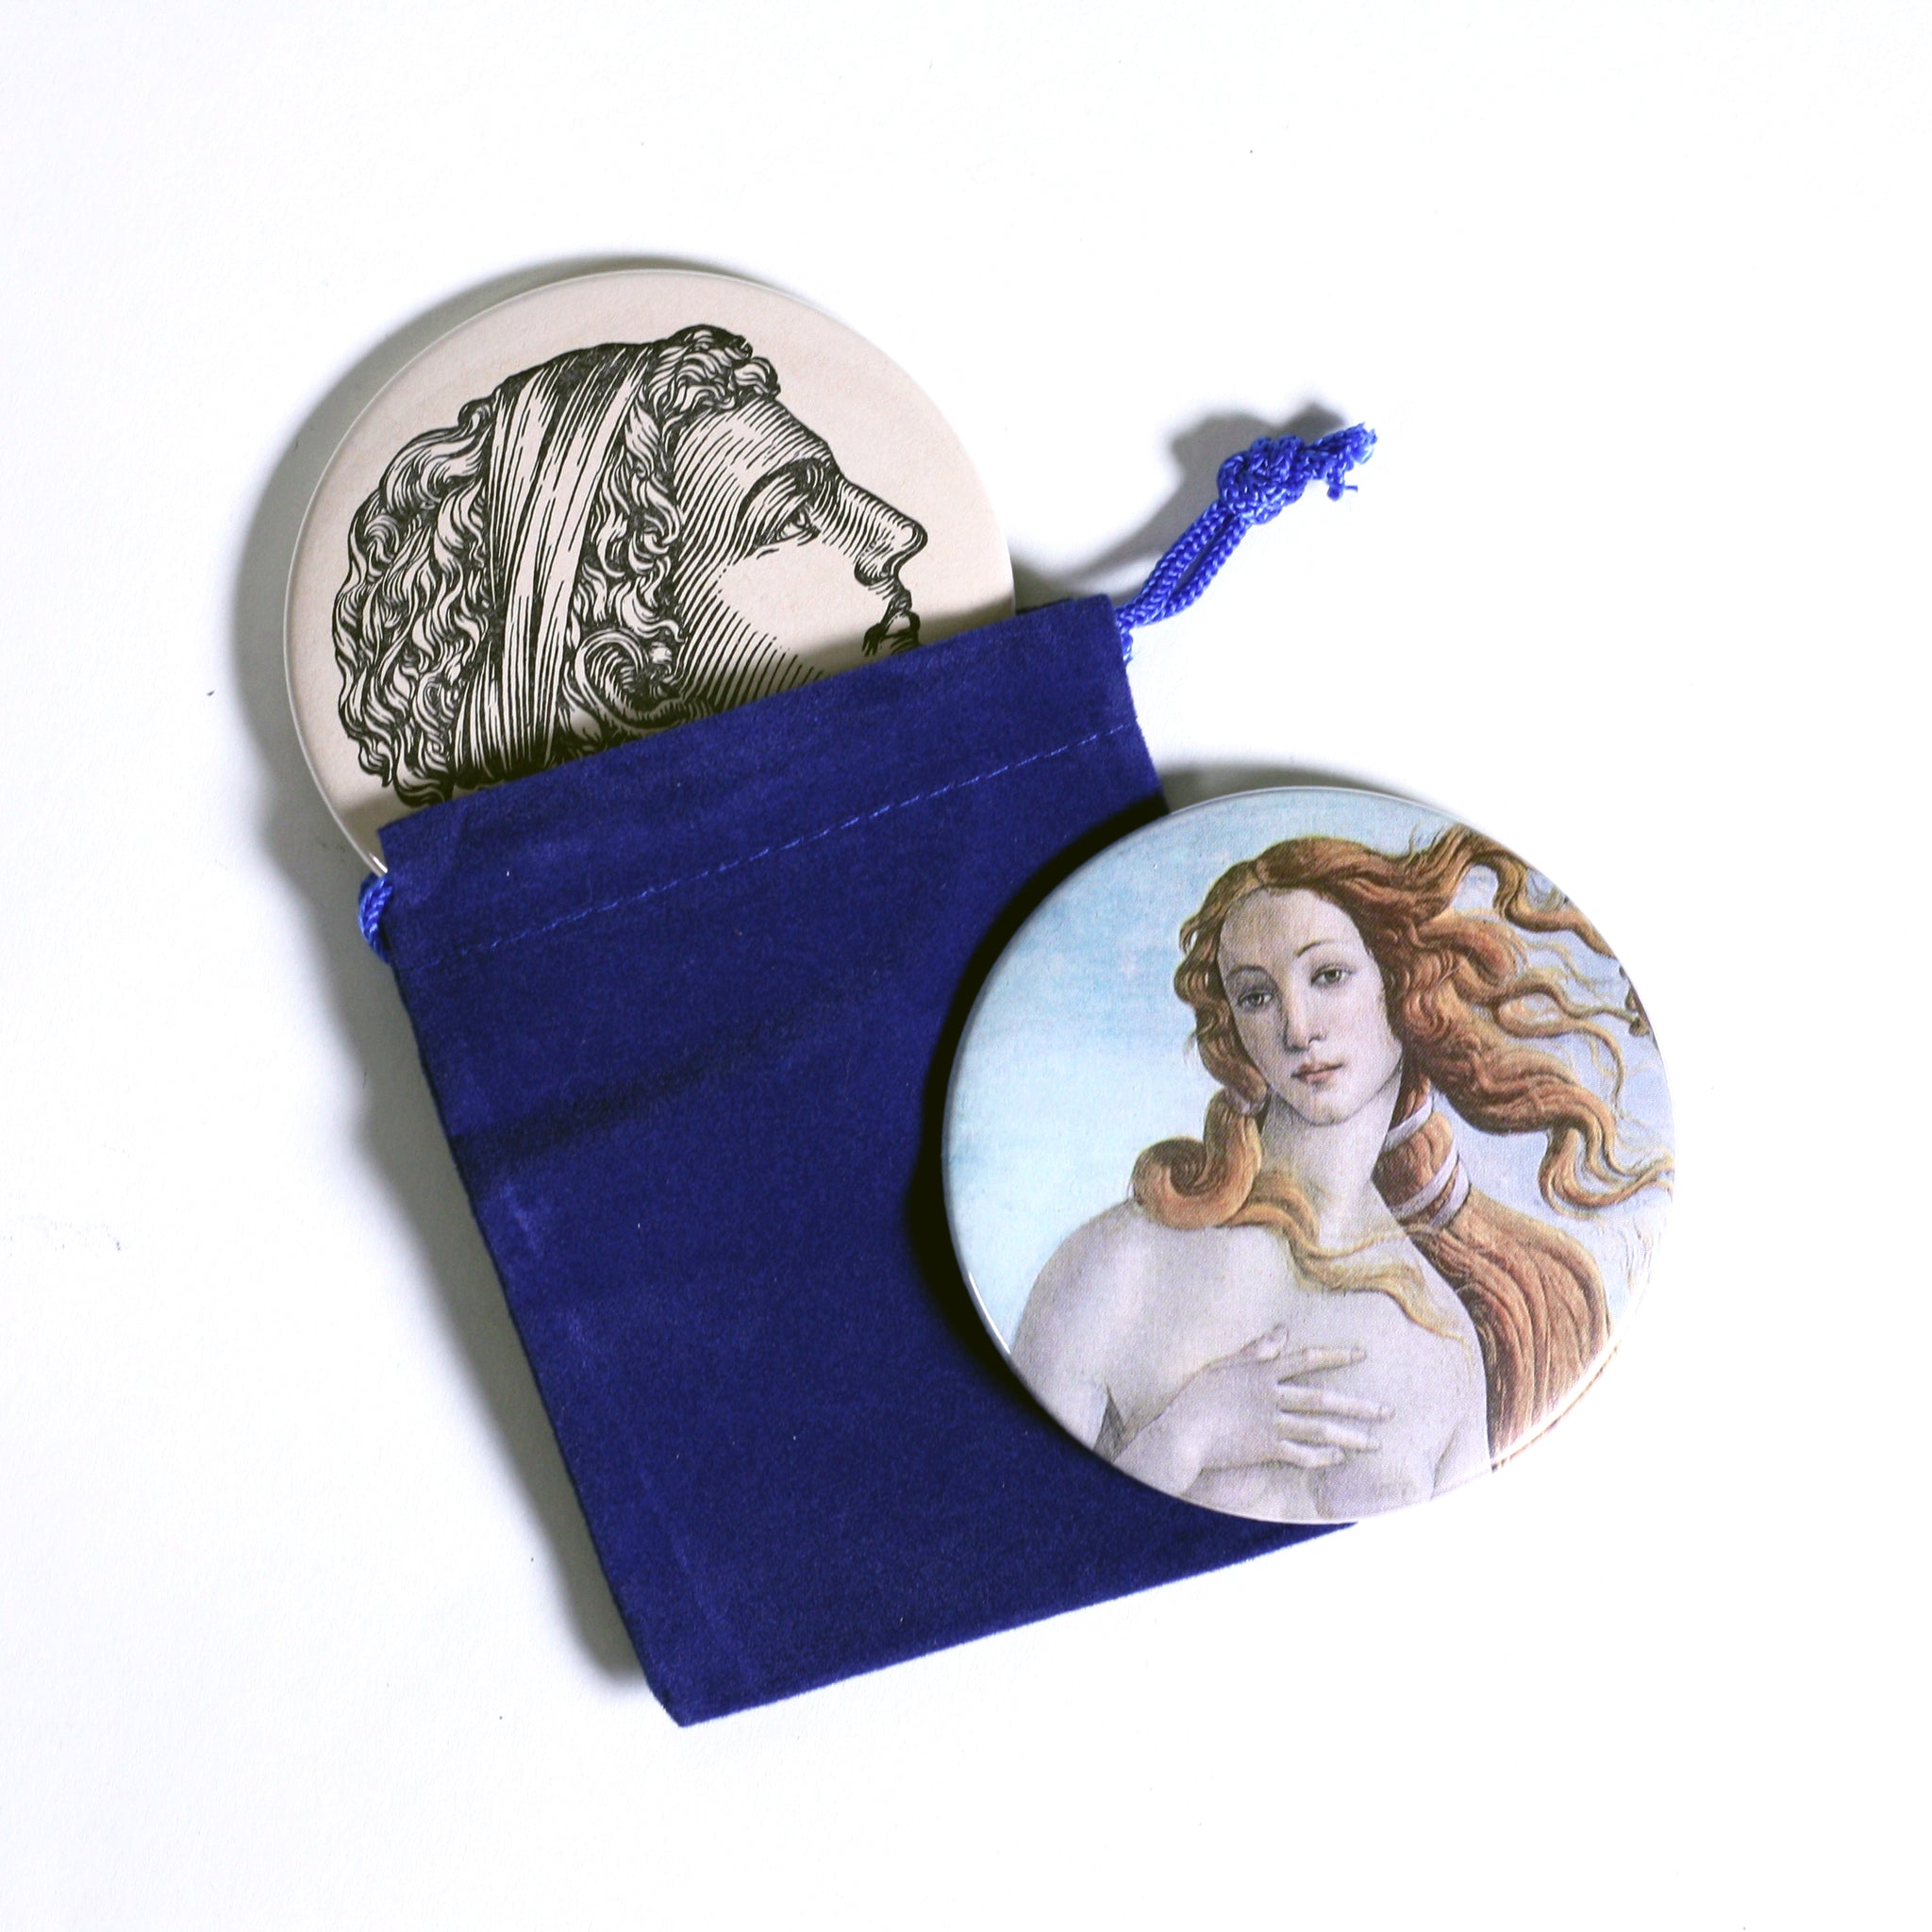 Upcycled Vintage Book Button Pocket Mirror Birth of Venus